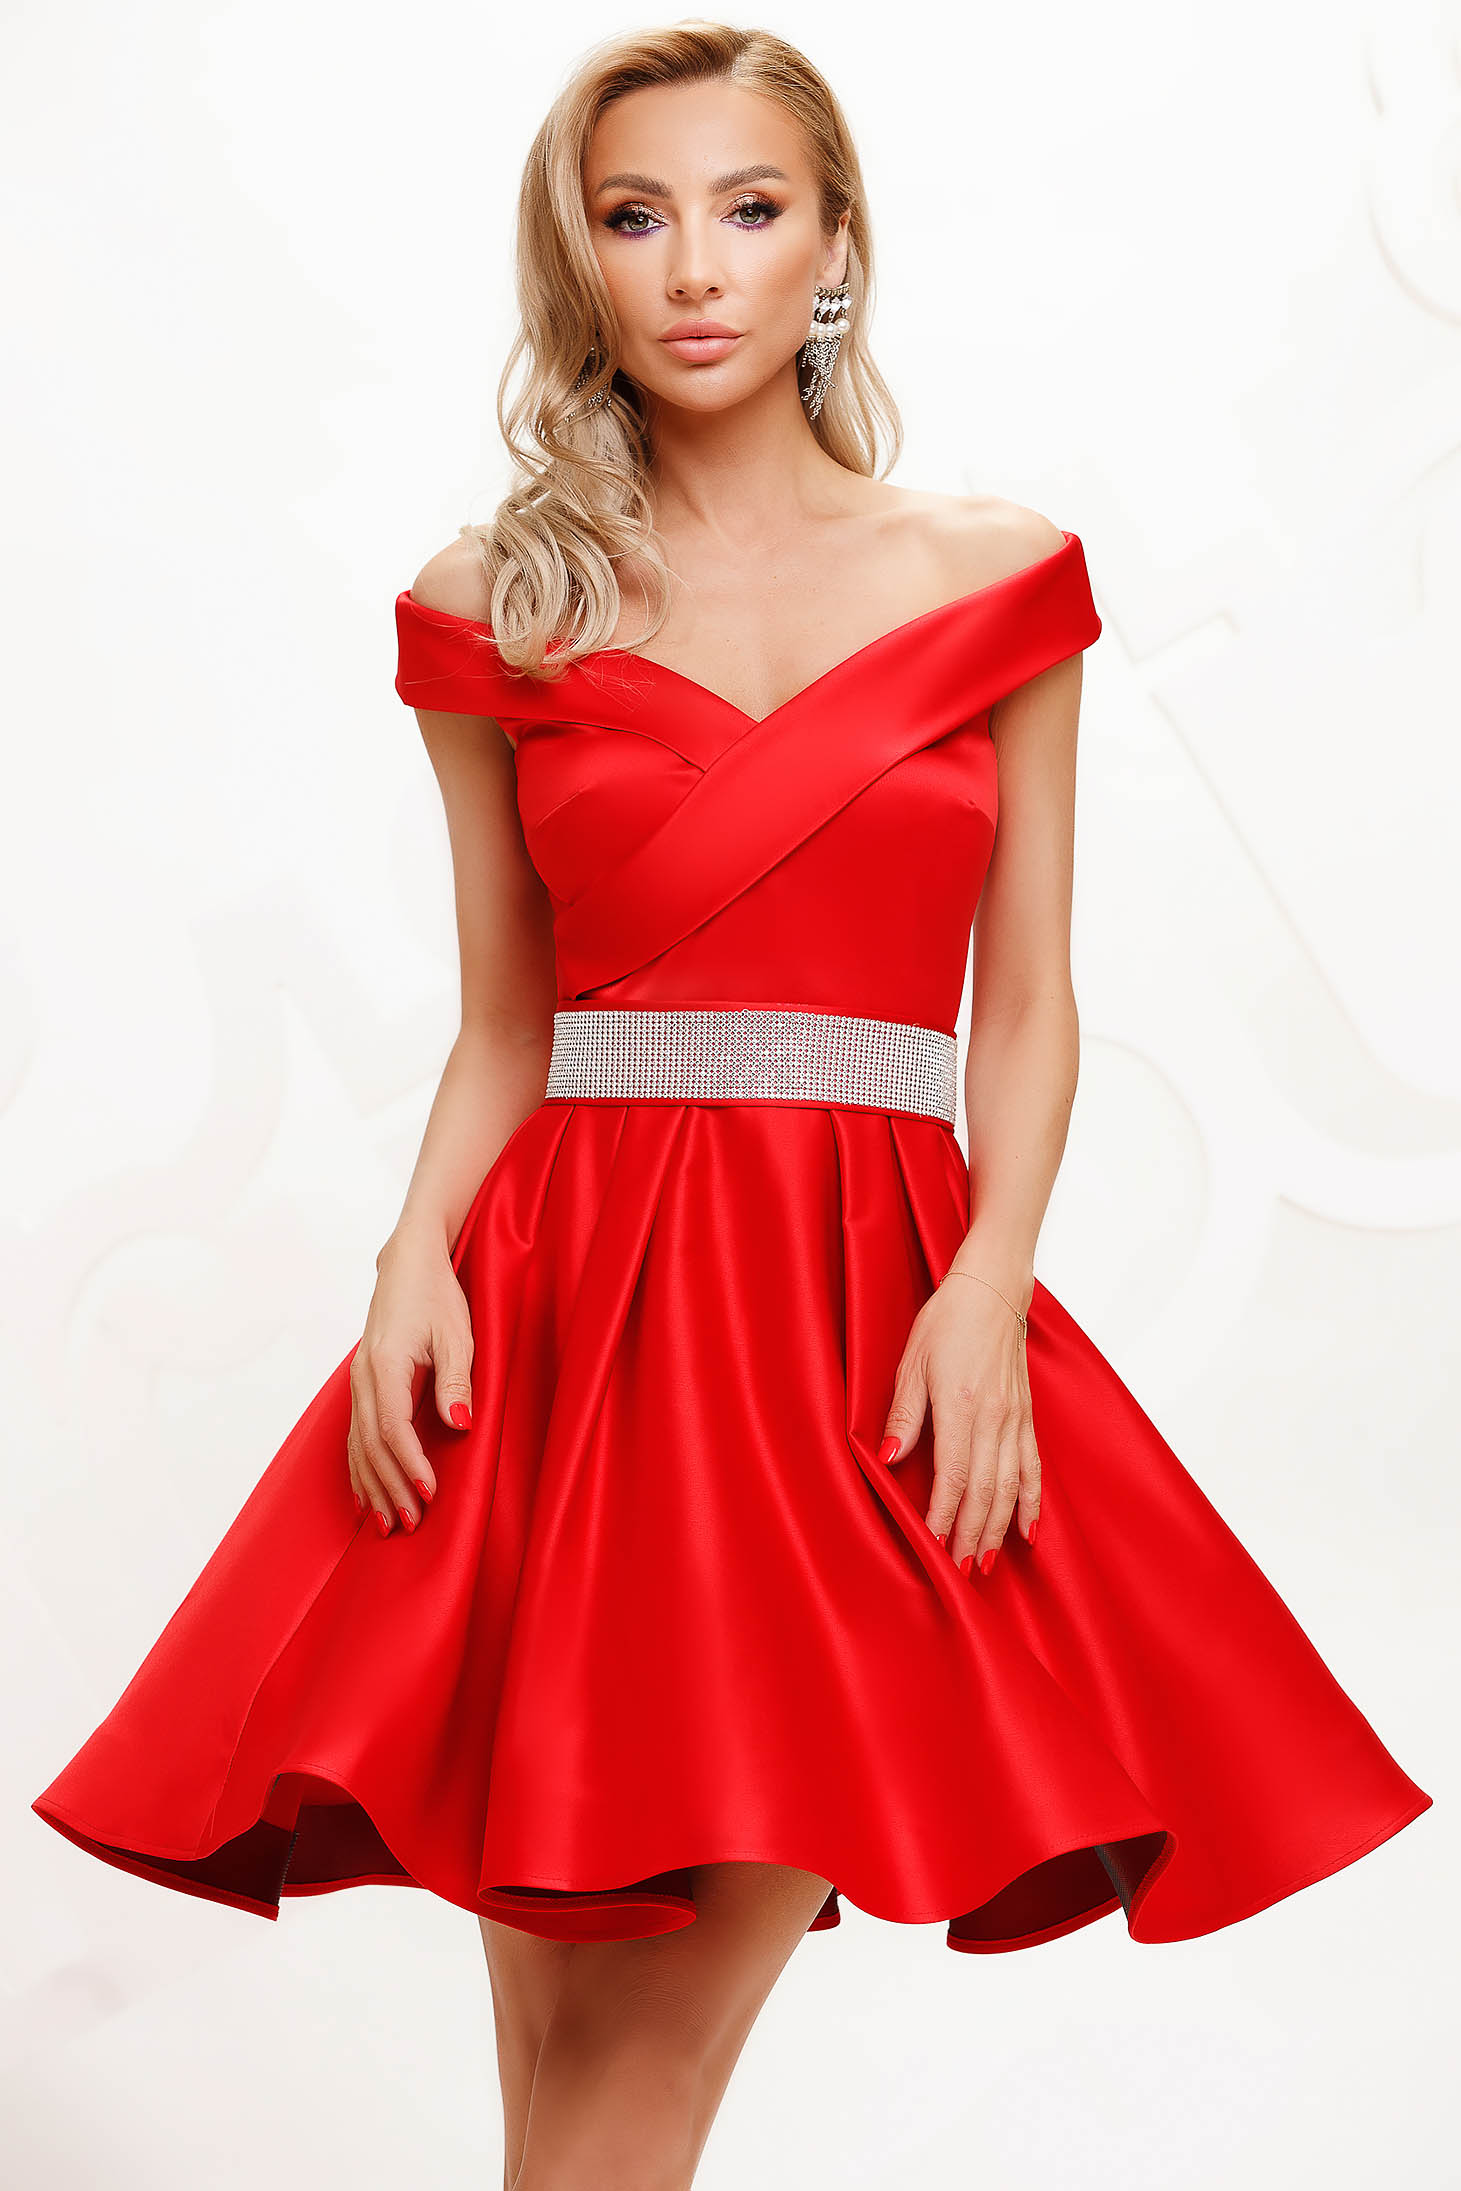 Red dress from satin cloche occasional accessorized with a waistband on the shoulders